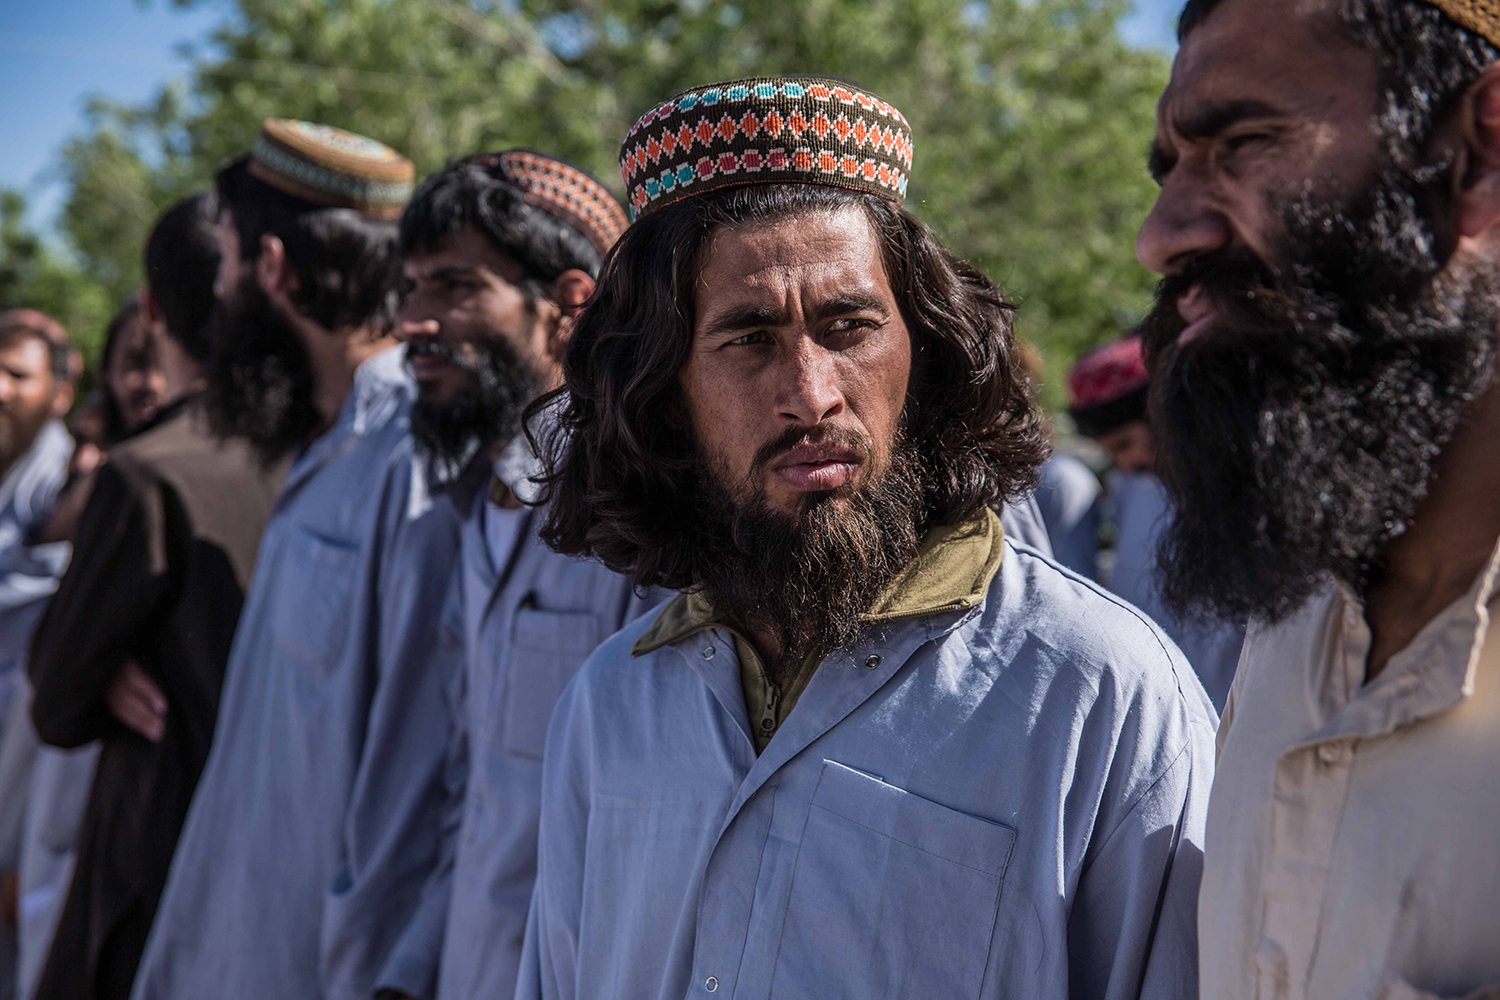 Taliban prisoners wait for their release at a government prison north of Kabul on May 26. Stefanie Glinski for Foreign Policy